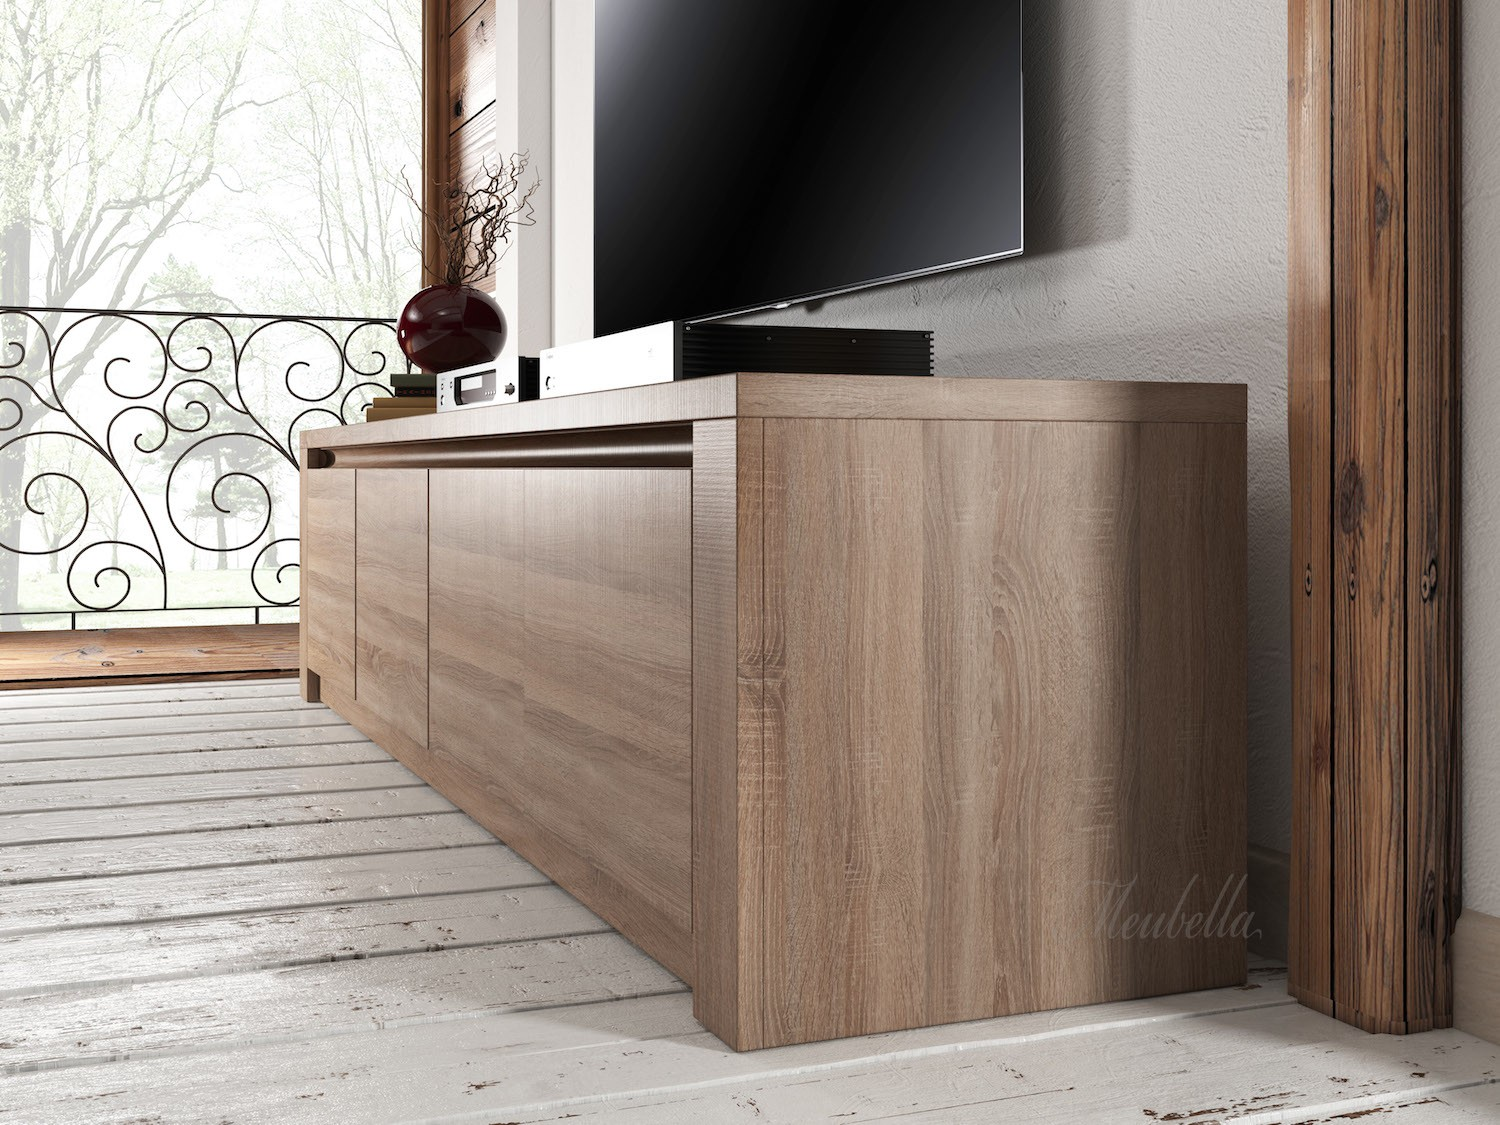 tv meubel monaco truffel eiken 4 vakken 170 cm tv. Black Bedroom Furniture Sets. Home Design Ideas